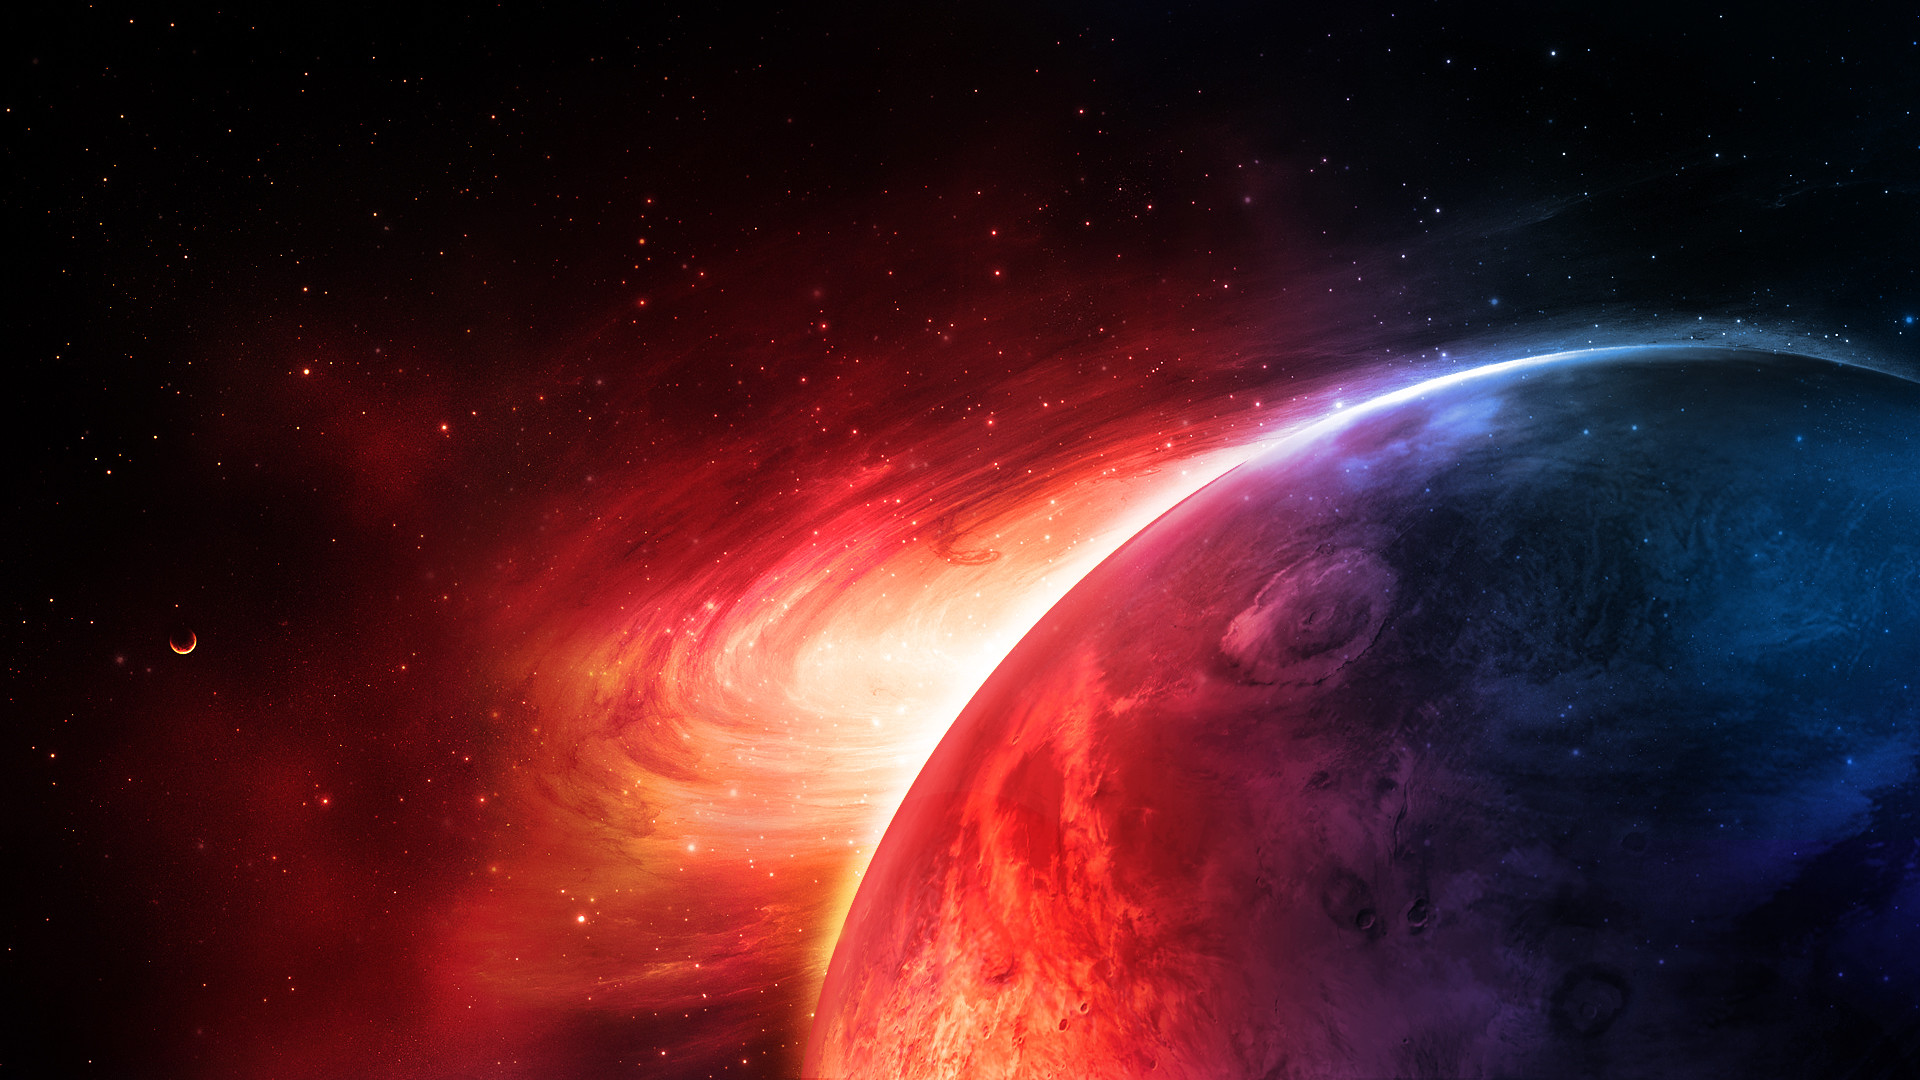 Red Space 1920x1080 Hd Wallpaper Red Space Desktop